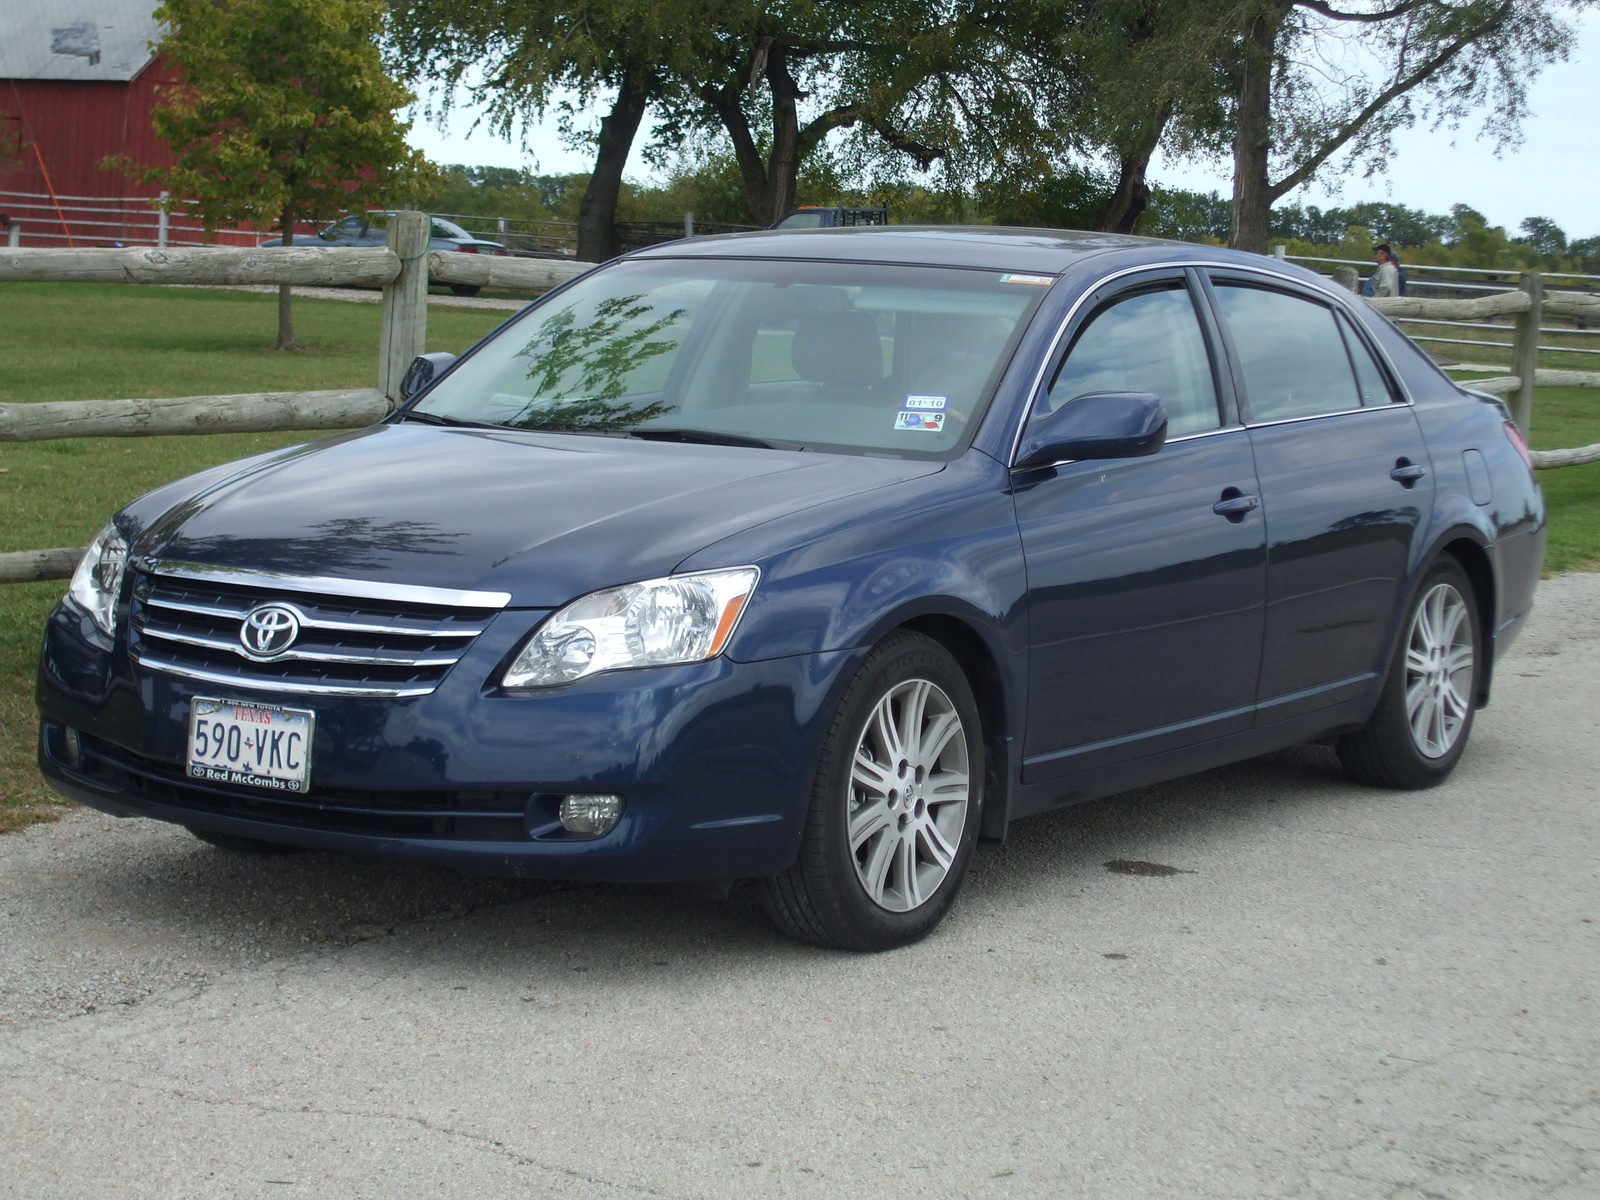 2007 Toyota Avalon Photos Informations Articles 2004 Camry Fuel Filter Location 3